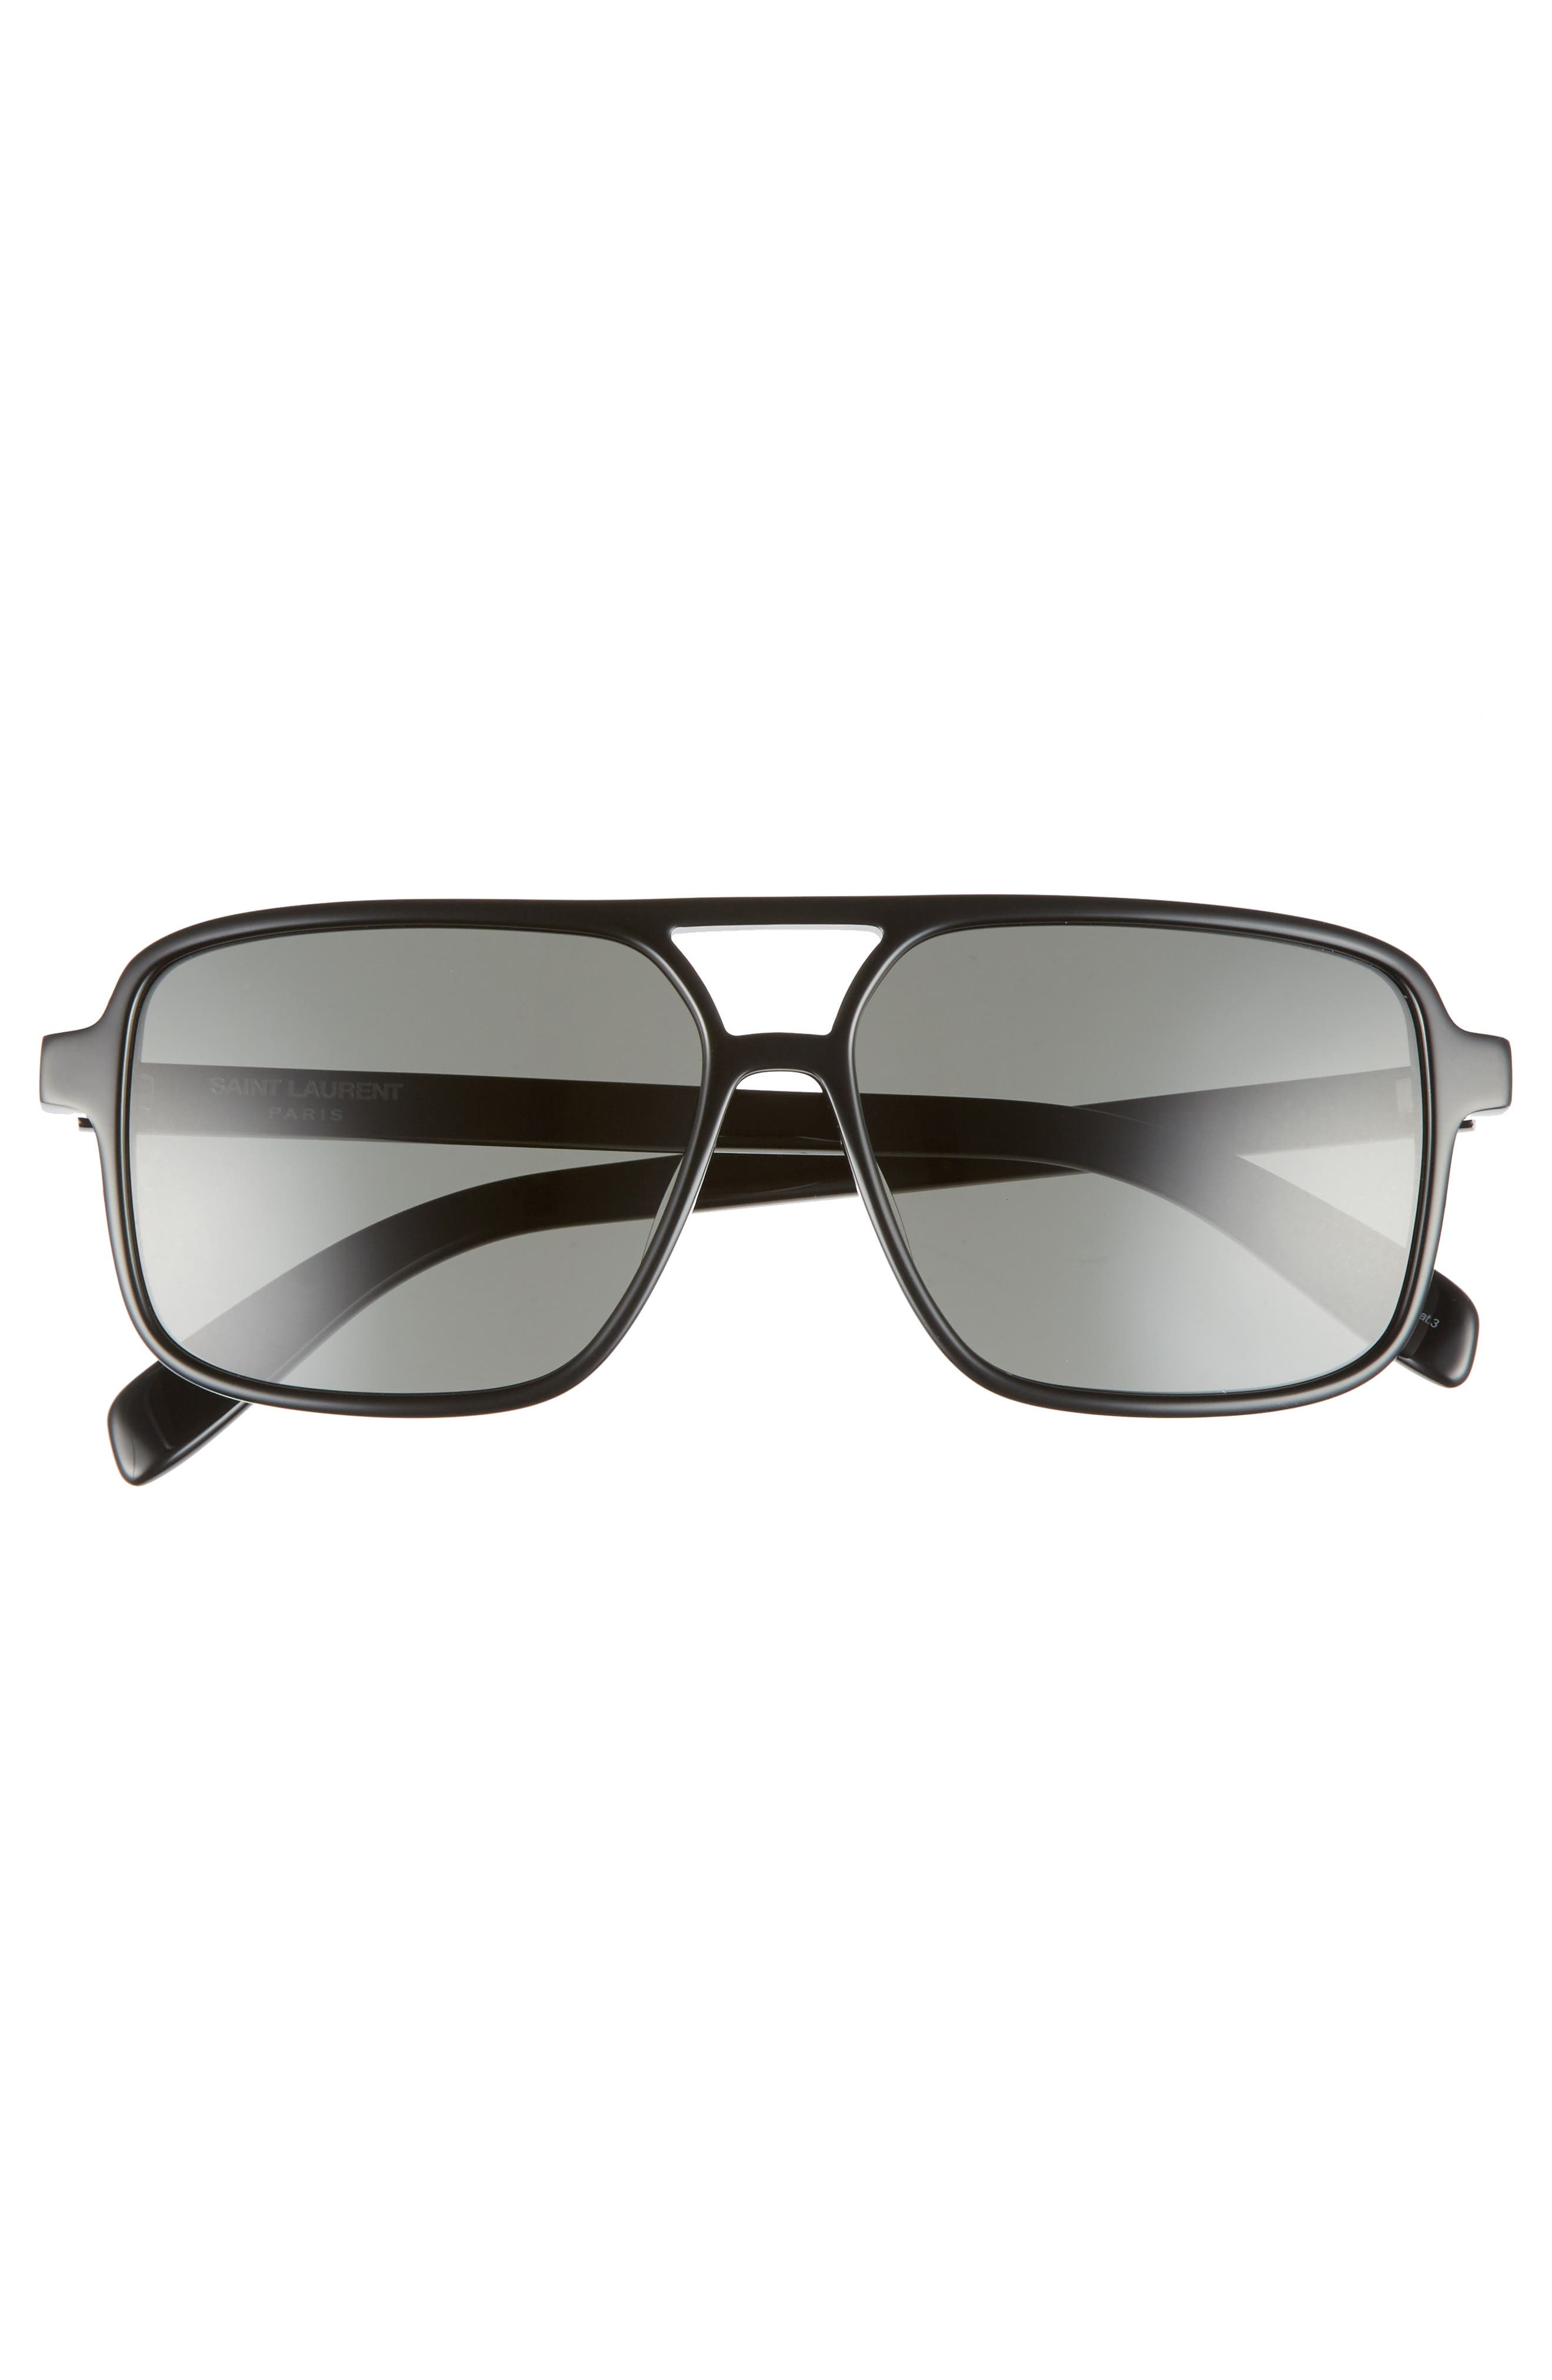 Alternate Image 3  - Saint Laurent 58mm Square Navigator Sunglasses